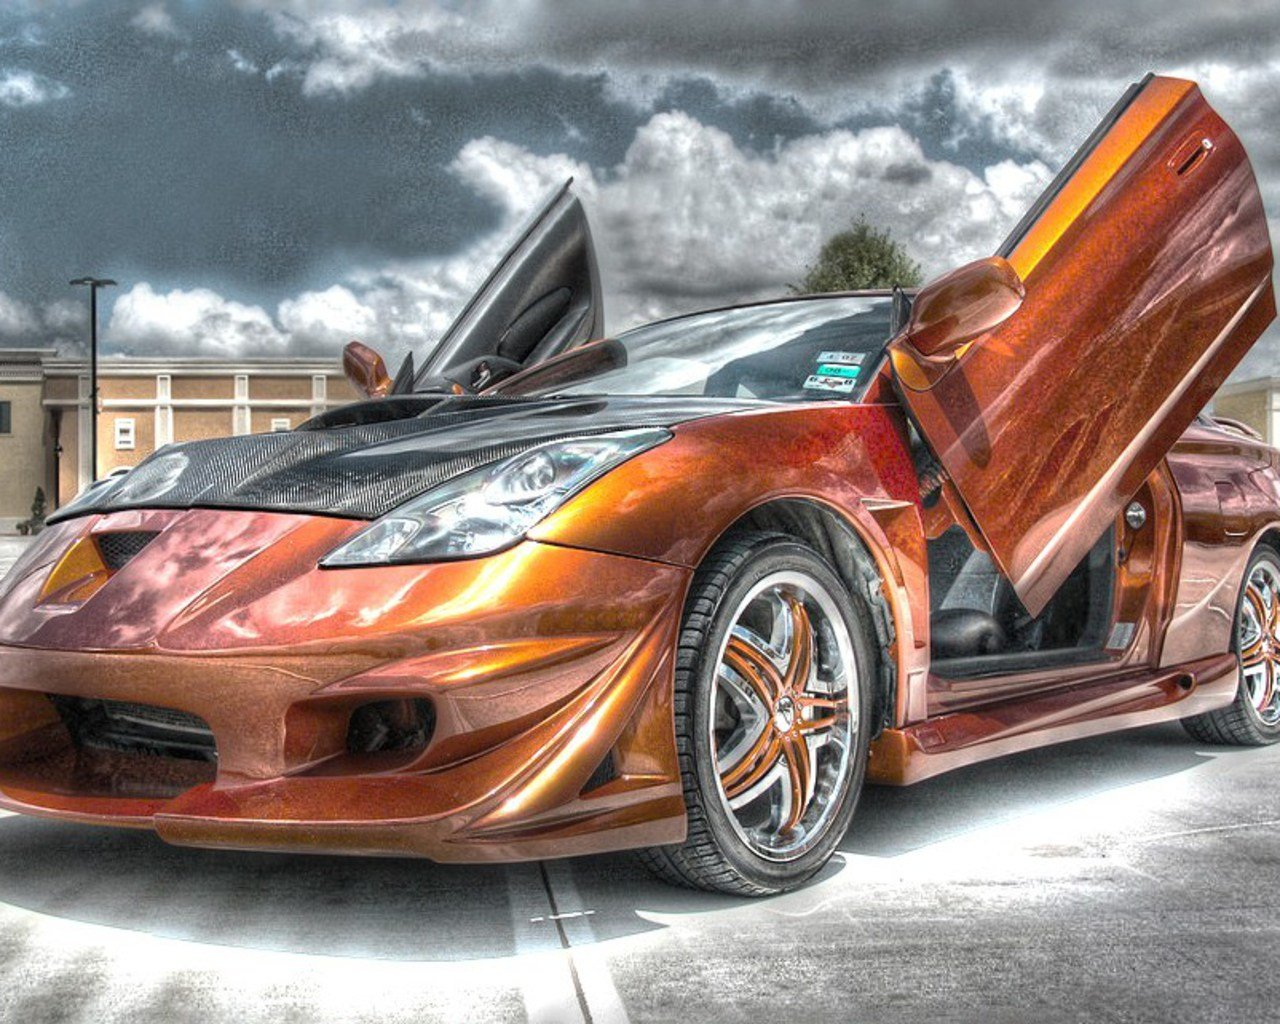 Latest Toyota Celica Wallpaper Its My Car Club Free Download